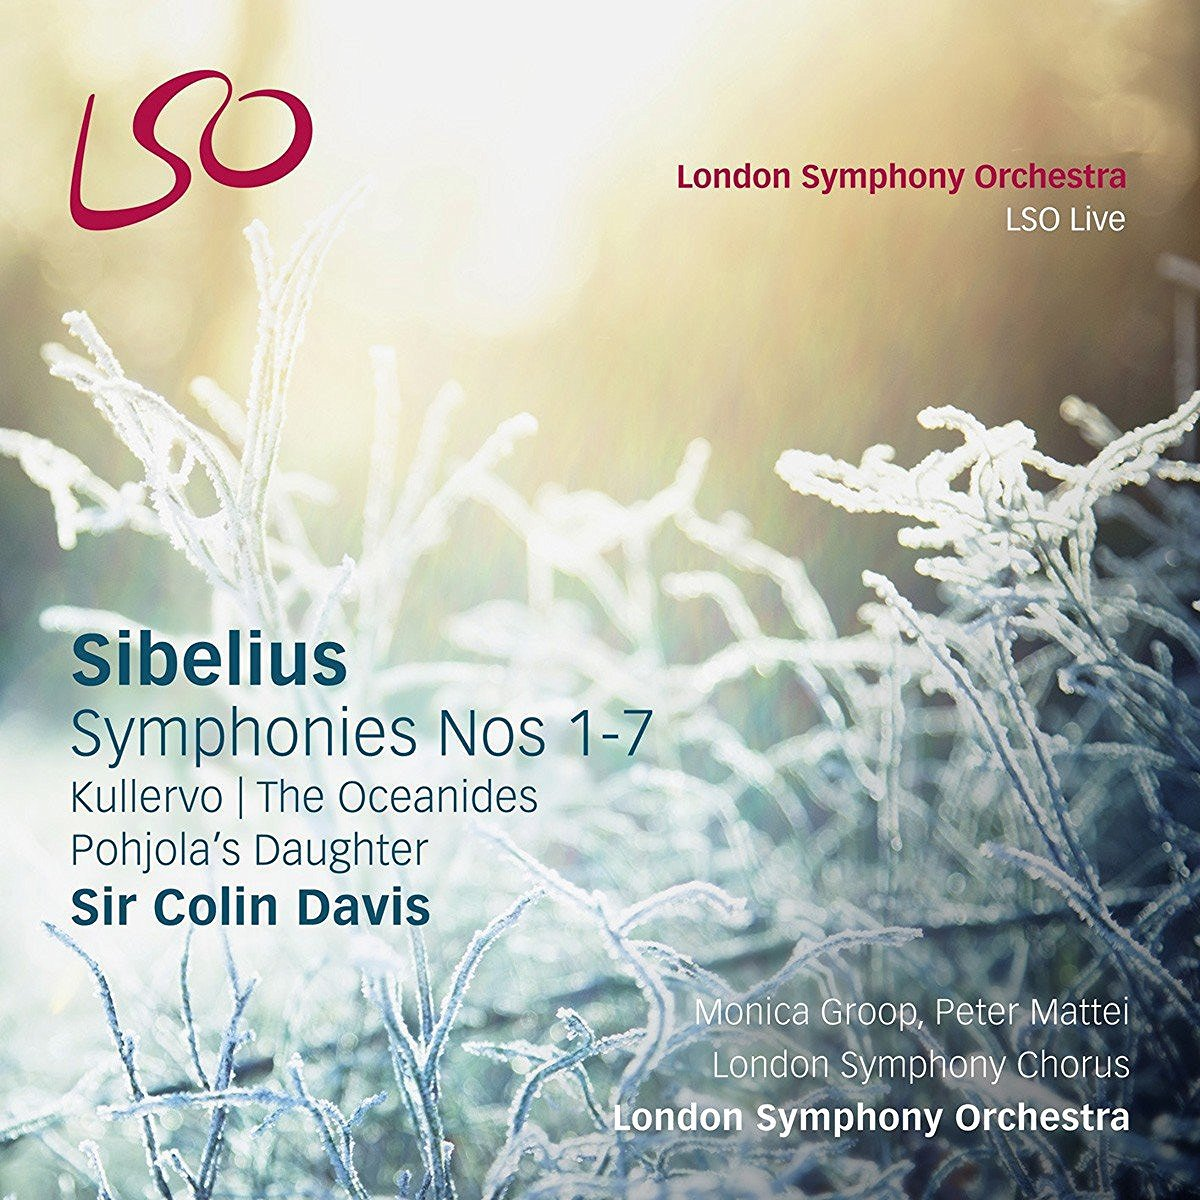 Sibelius: Symphonies Nos.1-7, Kullervo, The Oceanides, Pohjola's Daughter by LSO LIVE